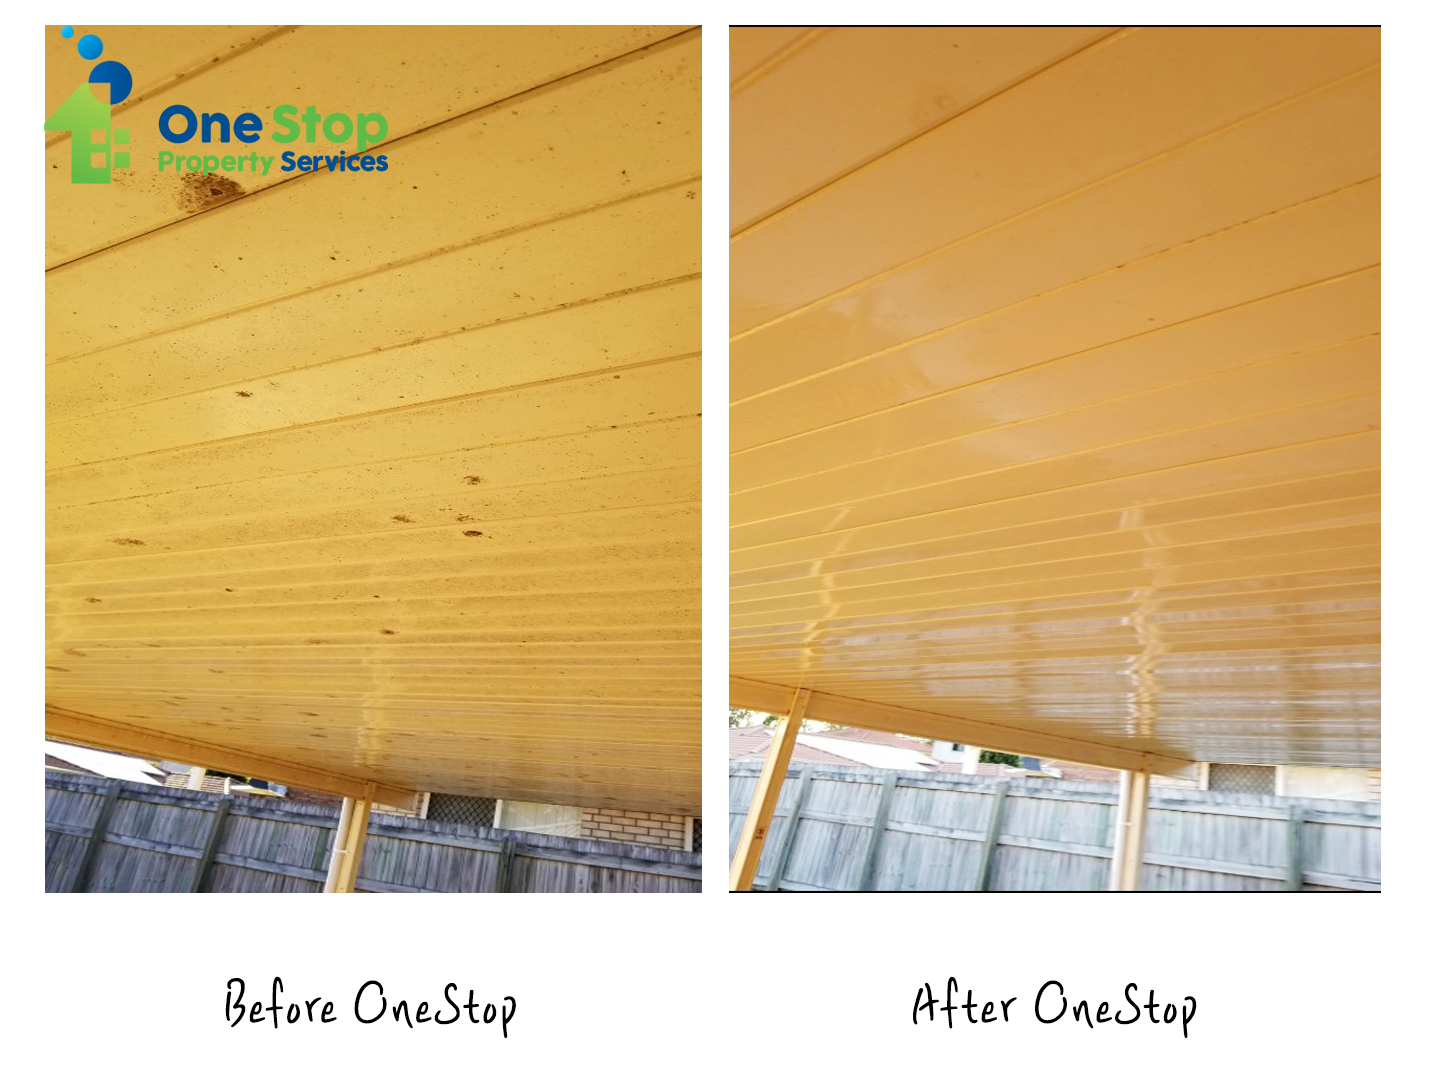 Before and after cleaning the yellow ceiling